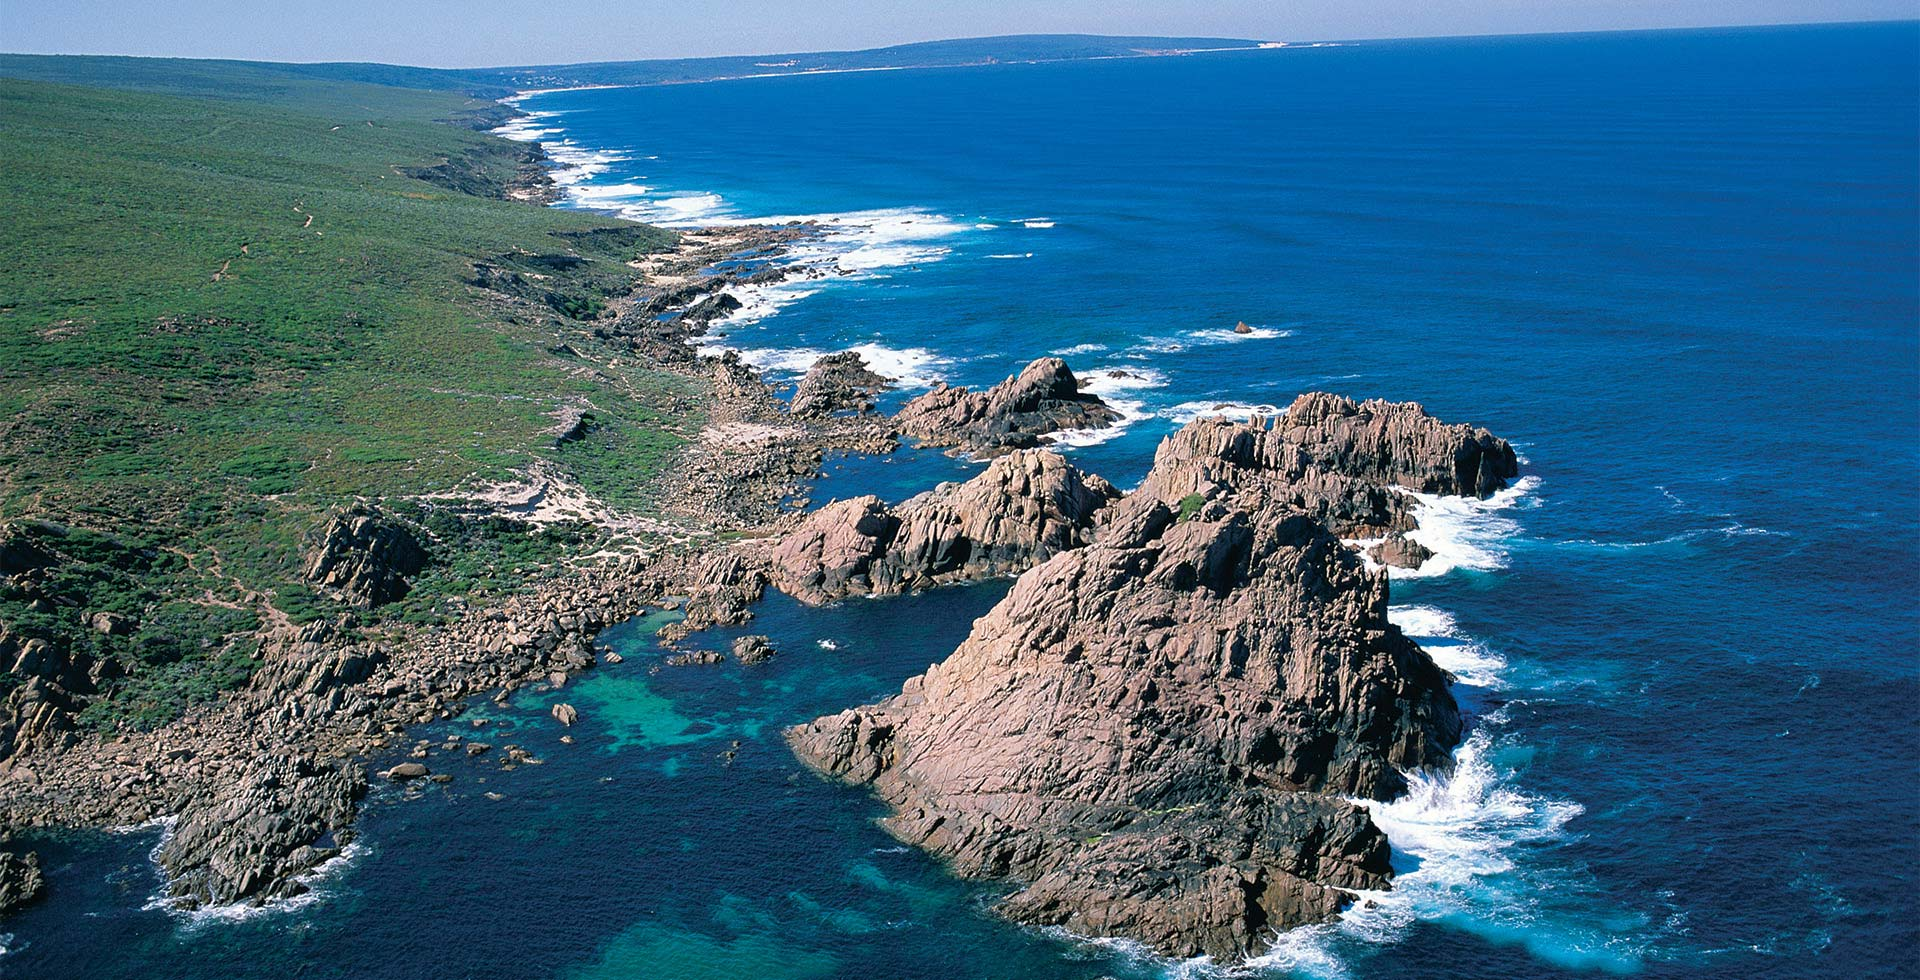 See the stunning coast around Cape Naturalise in Yallingup